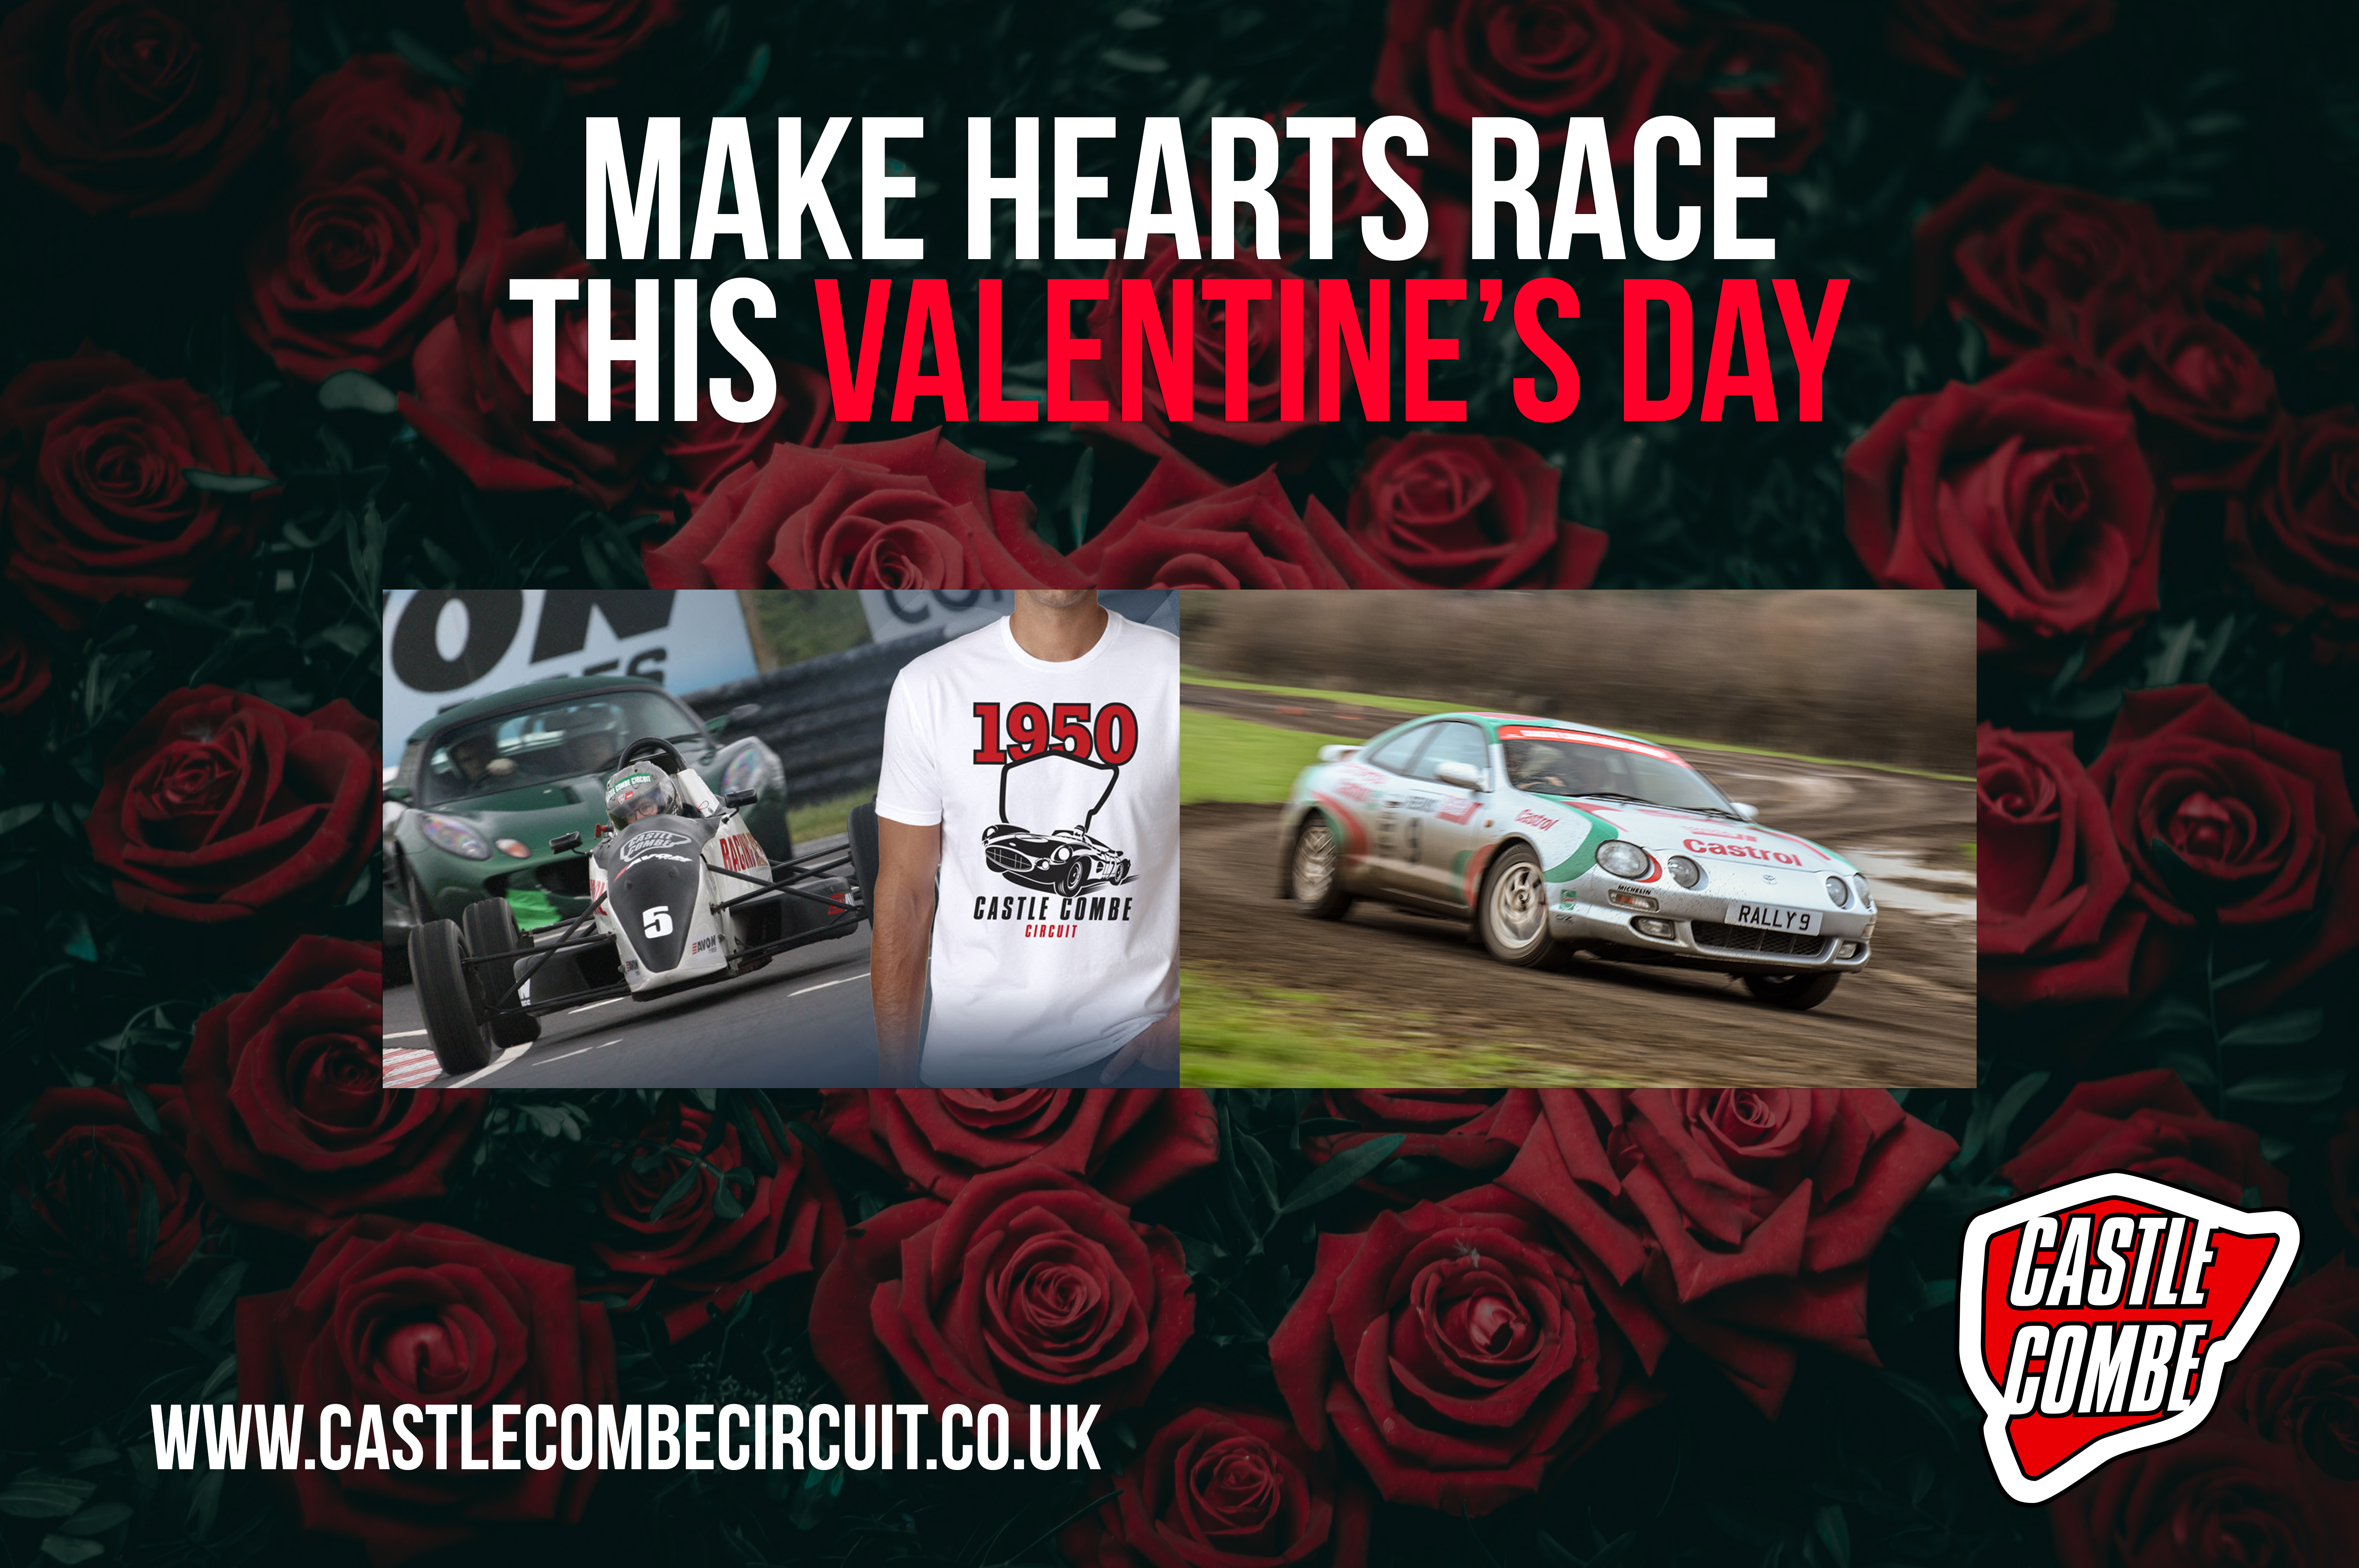 MAKE HEARTS RACE THIS VALENTINE'S DAY WITH CASTLE COMBE CIRCUIT